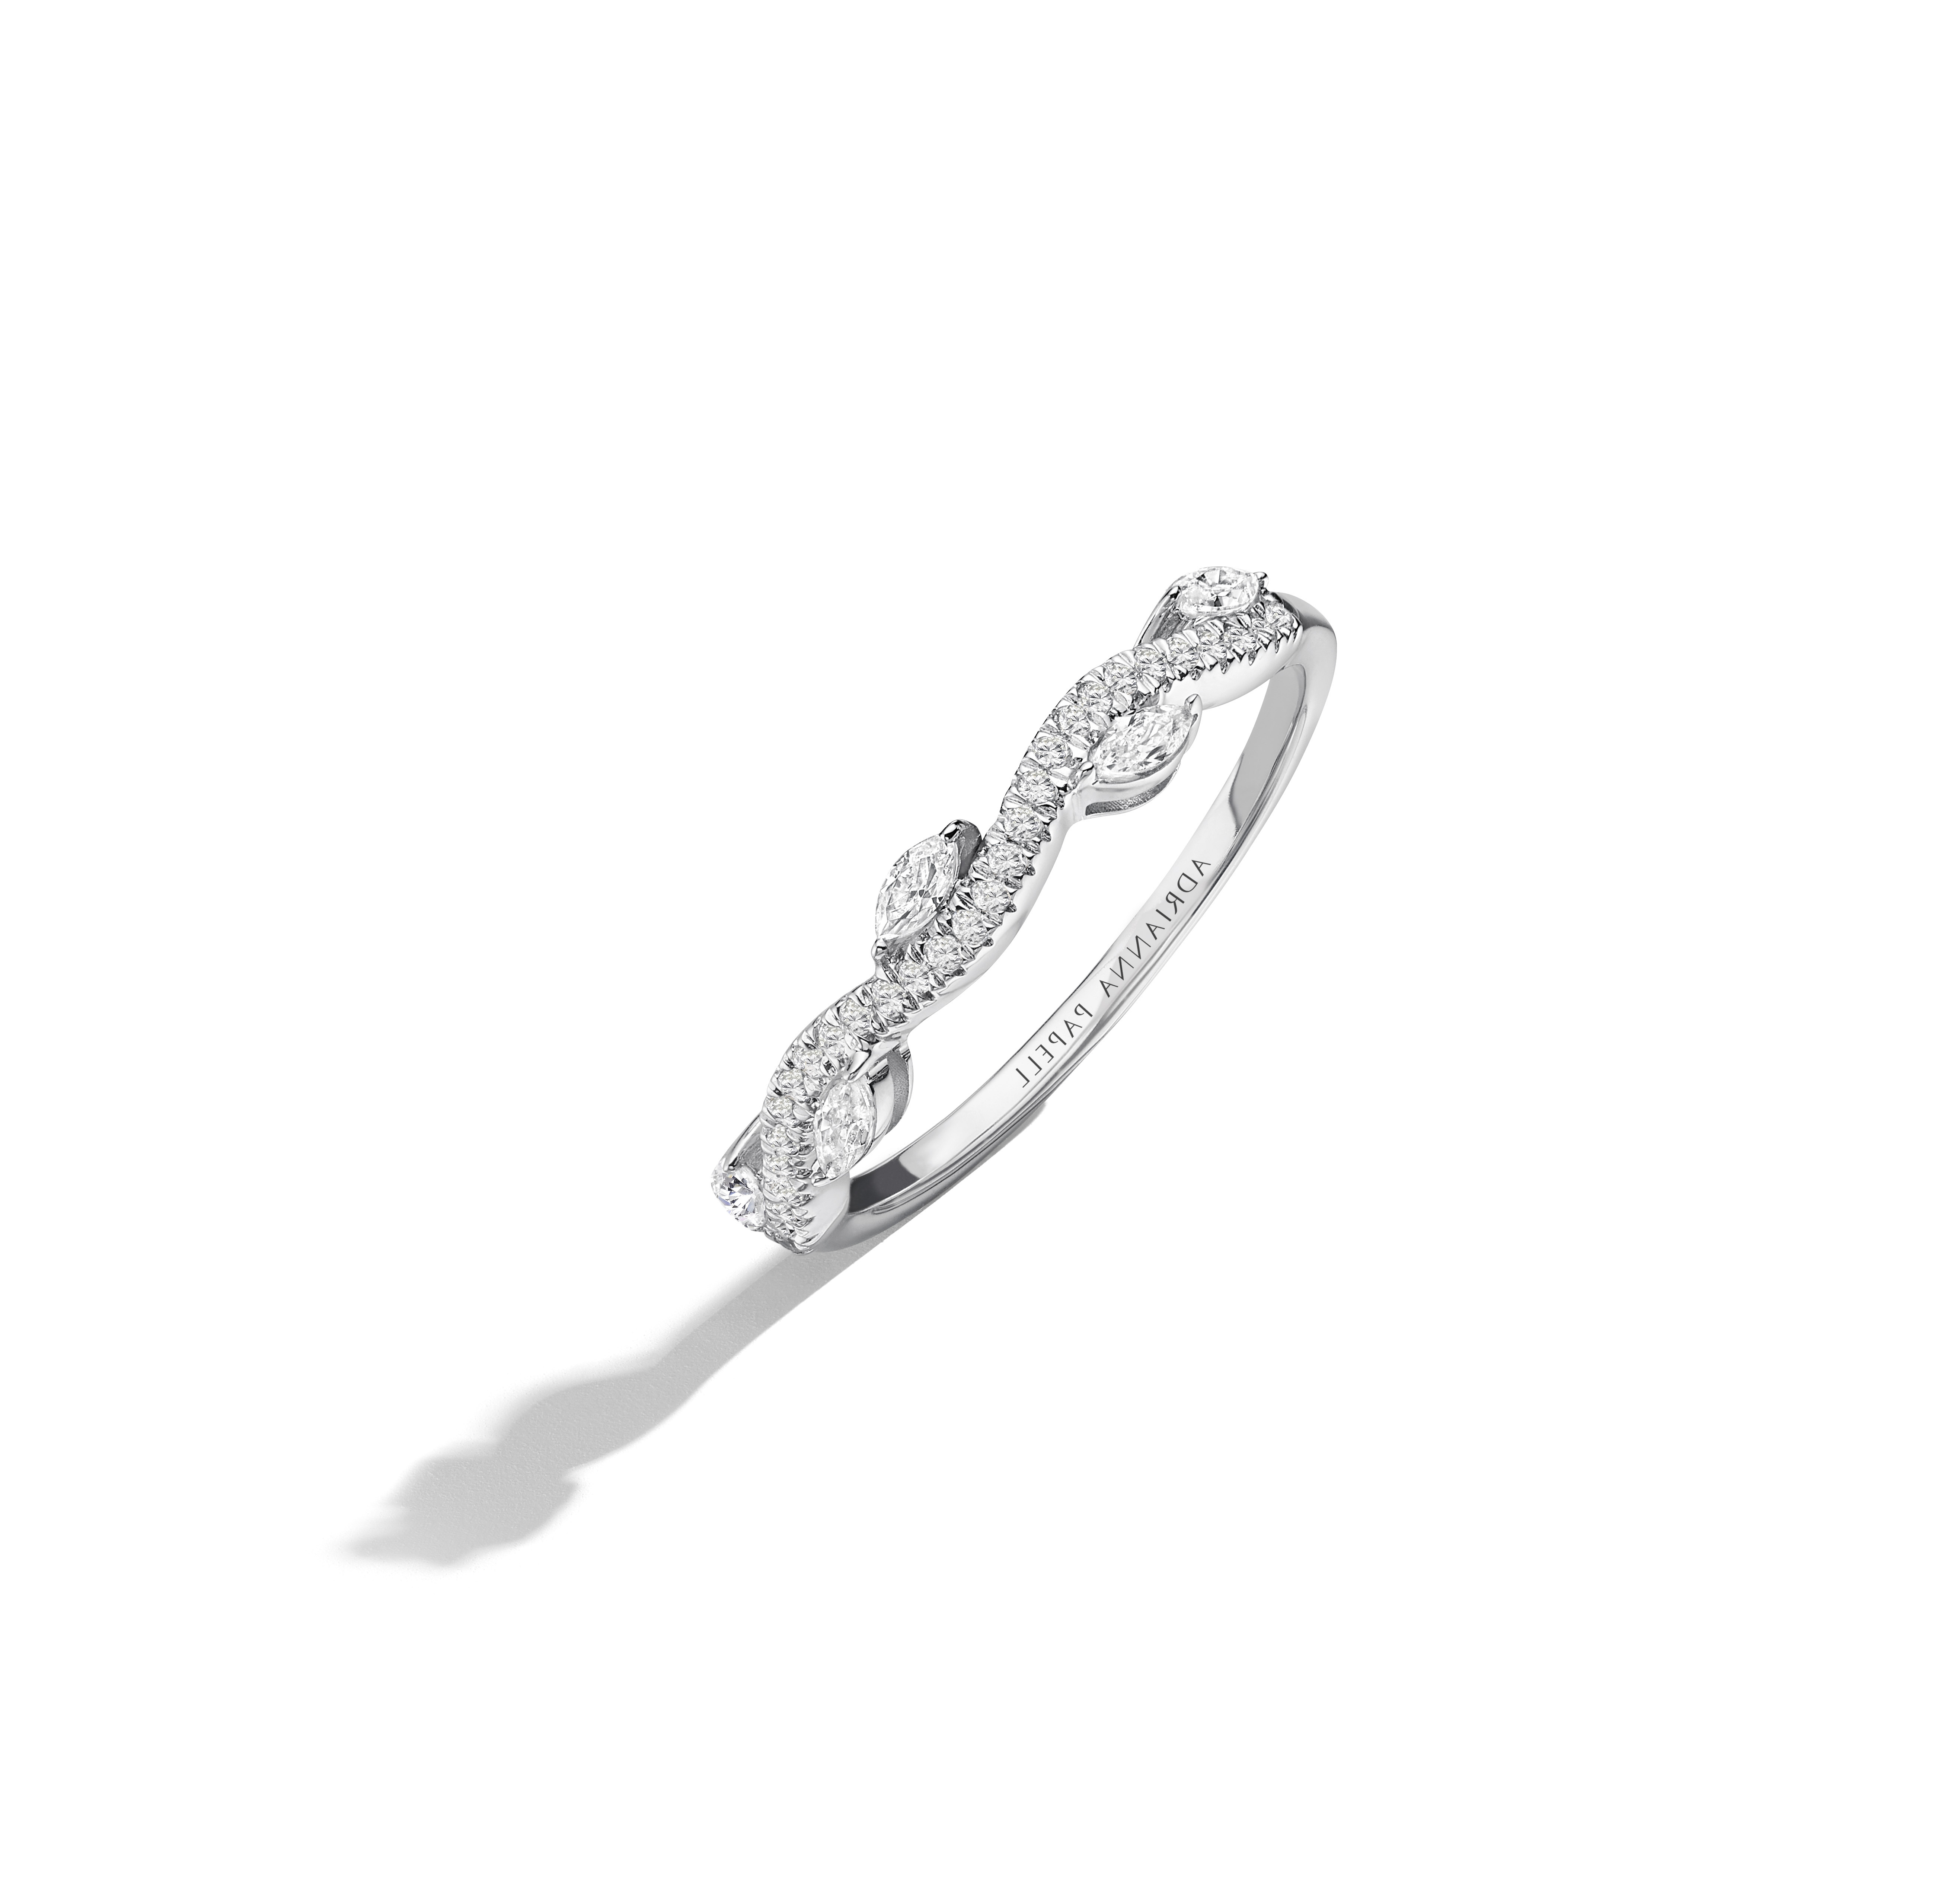 Kay Jewelers Announces Exclusive Bridal Jewelry Collection With Leading Special Occasion Brand Adrianna Papell Business Wire